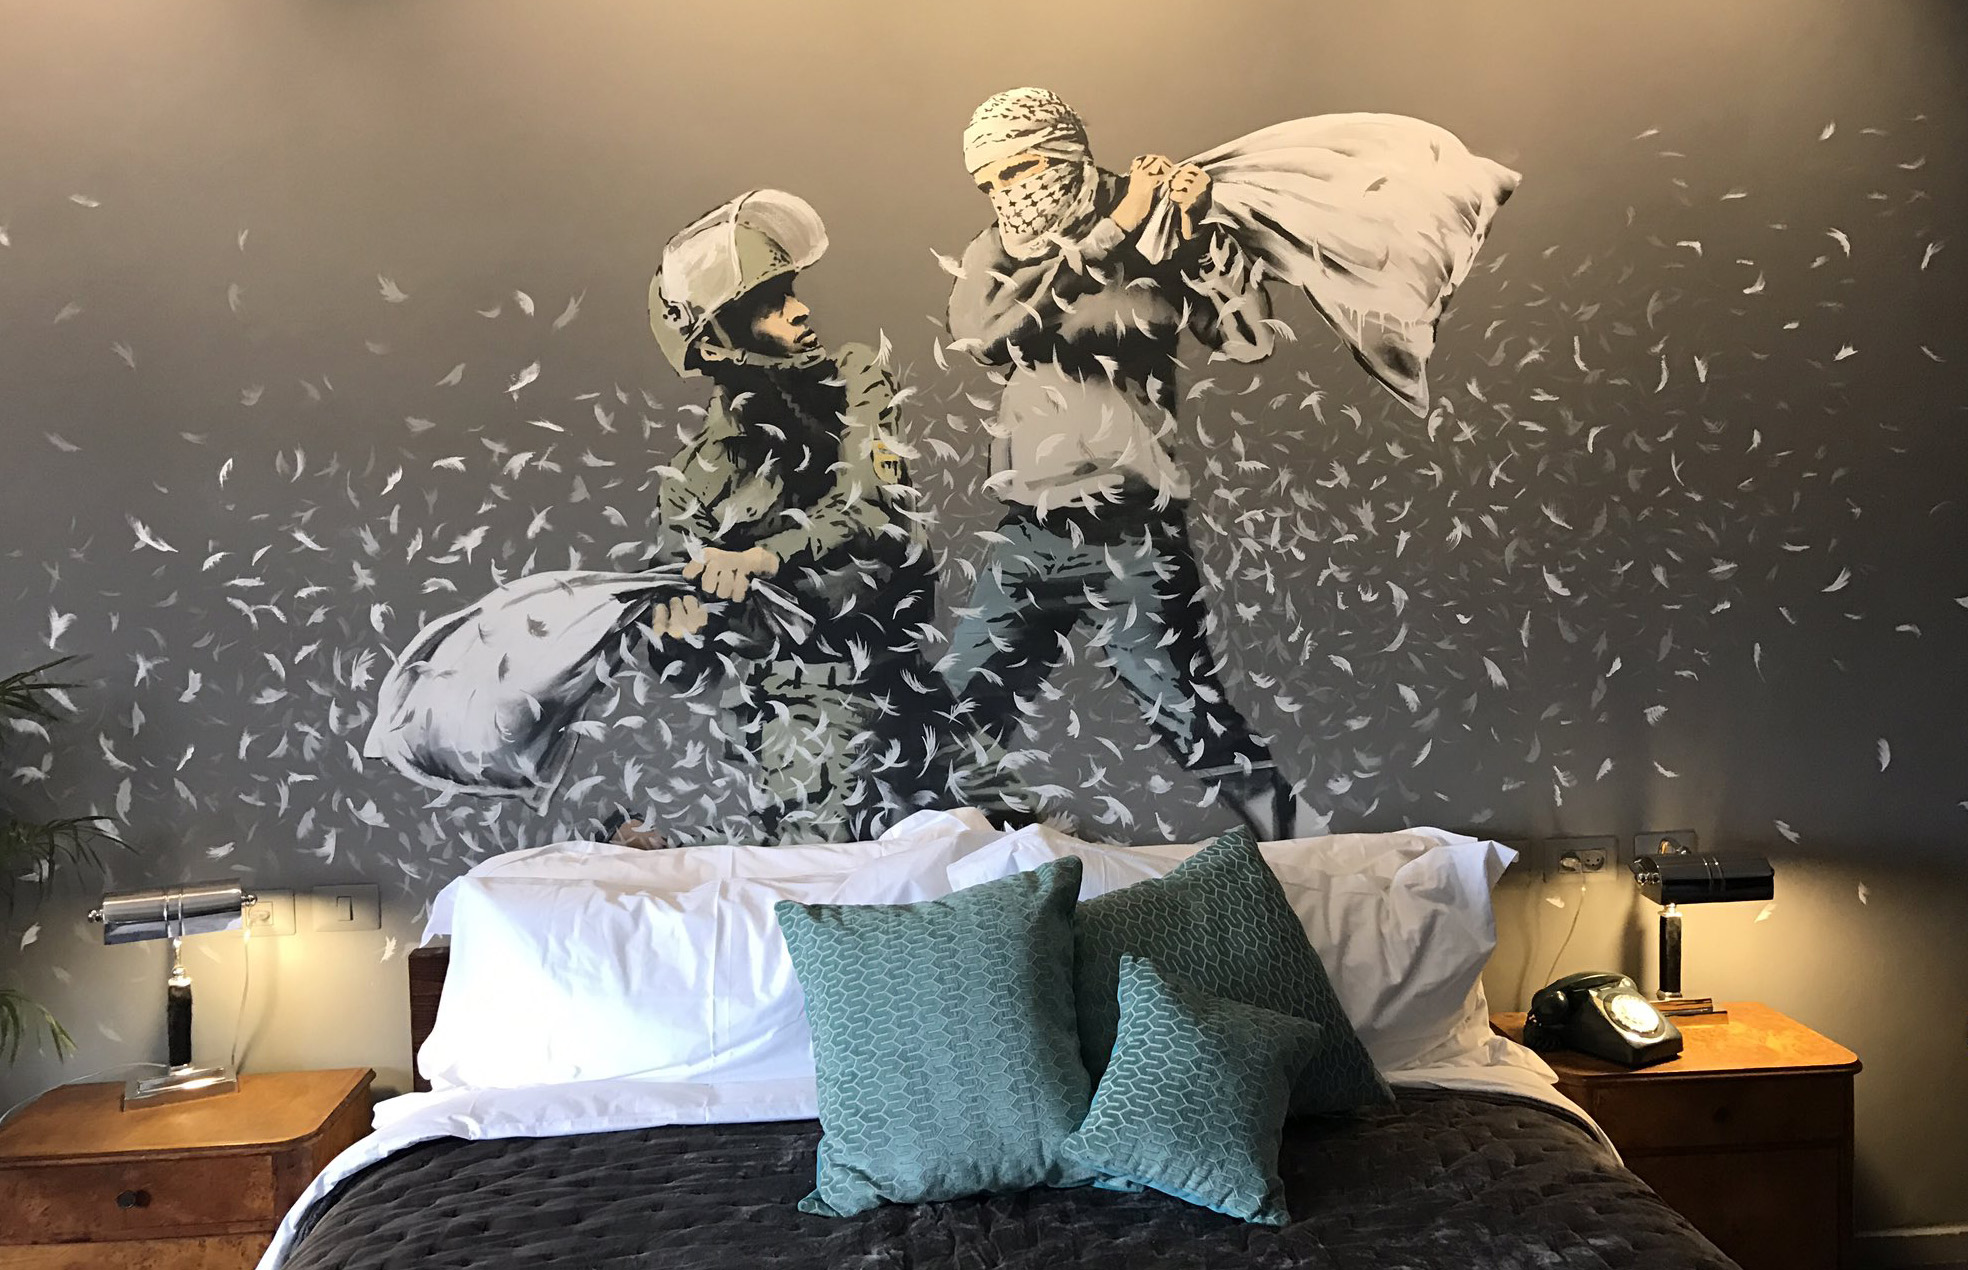 Banksy Built A Hotel Overlooking The Israel-Palestine Barrier